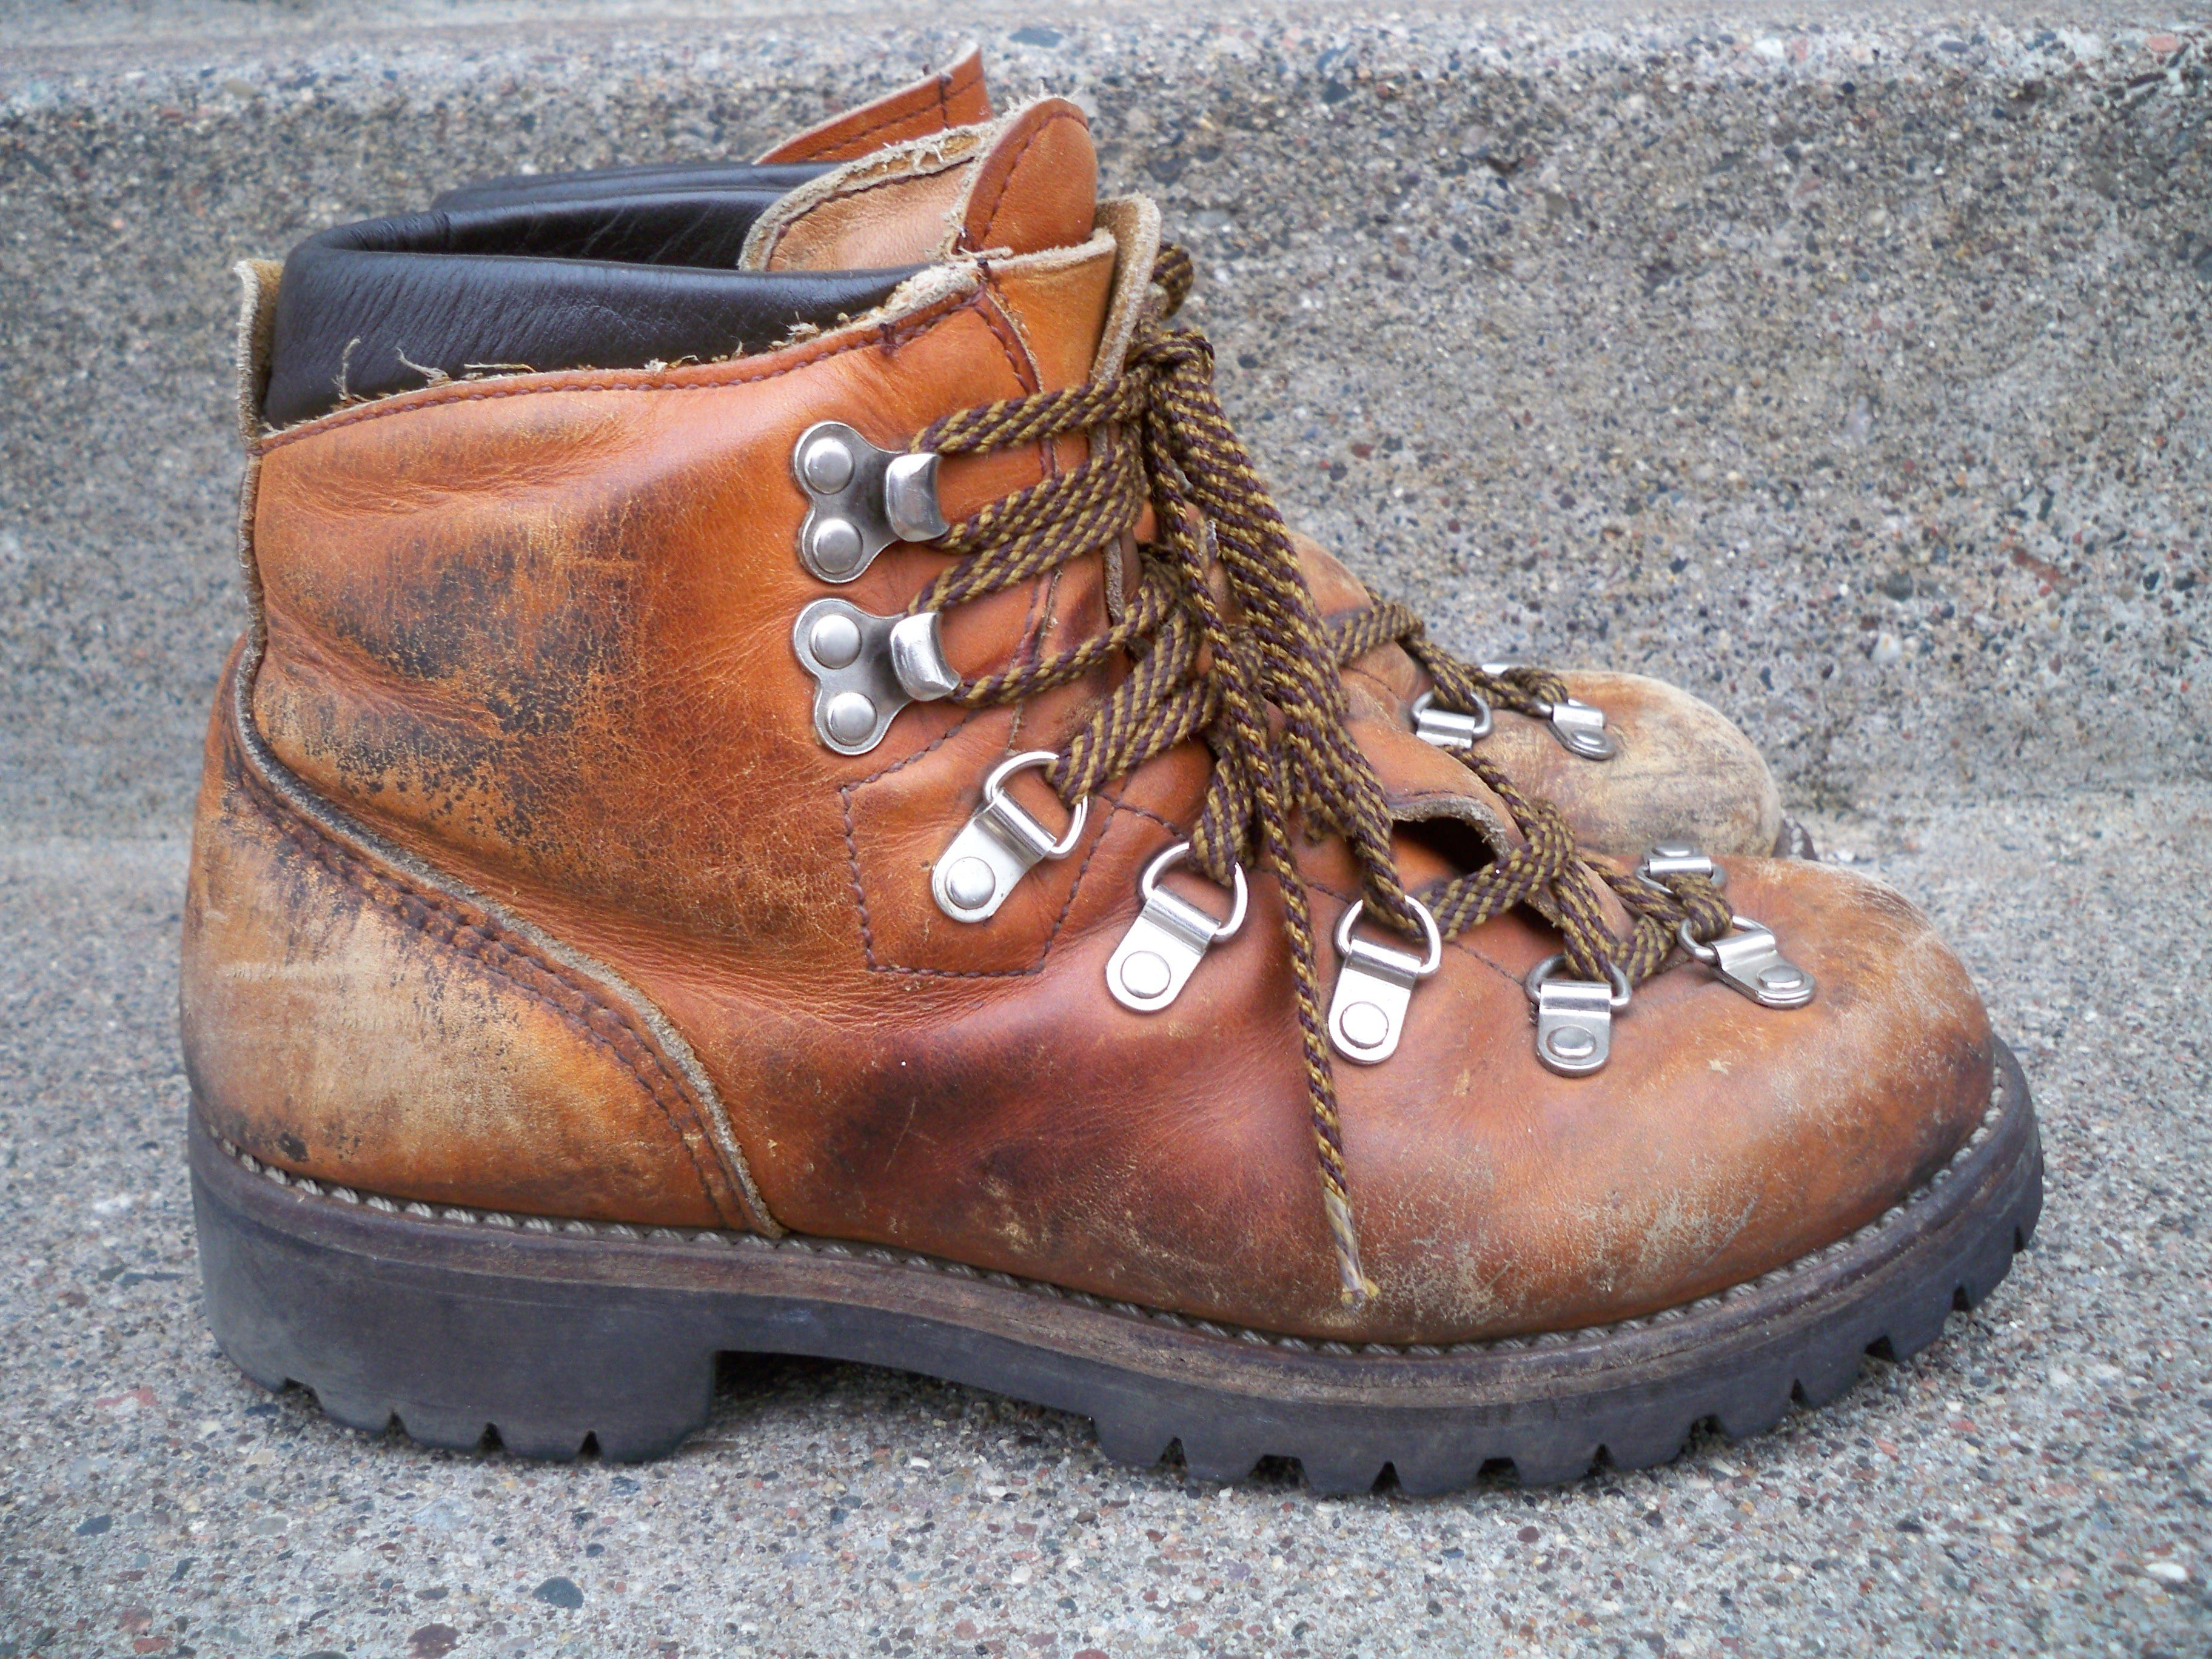 47d4e36f22cad Vintage Red Wing Irish Setter Mountaineering Hiking Stomper Women's ...